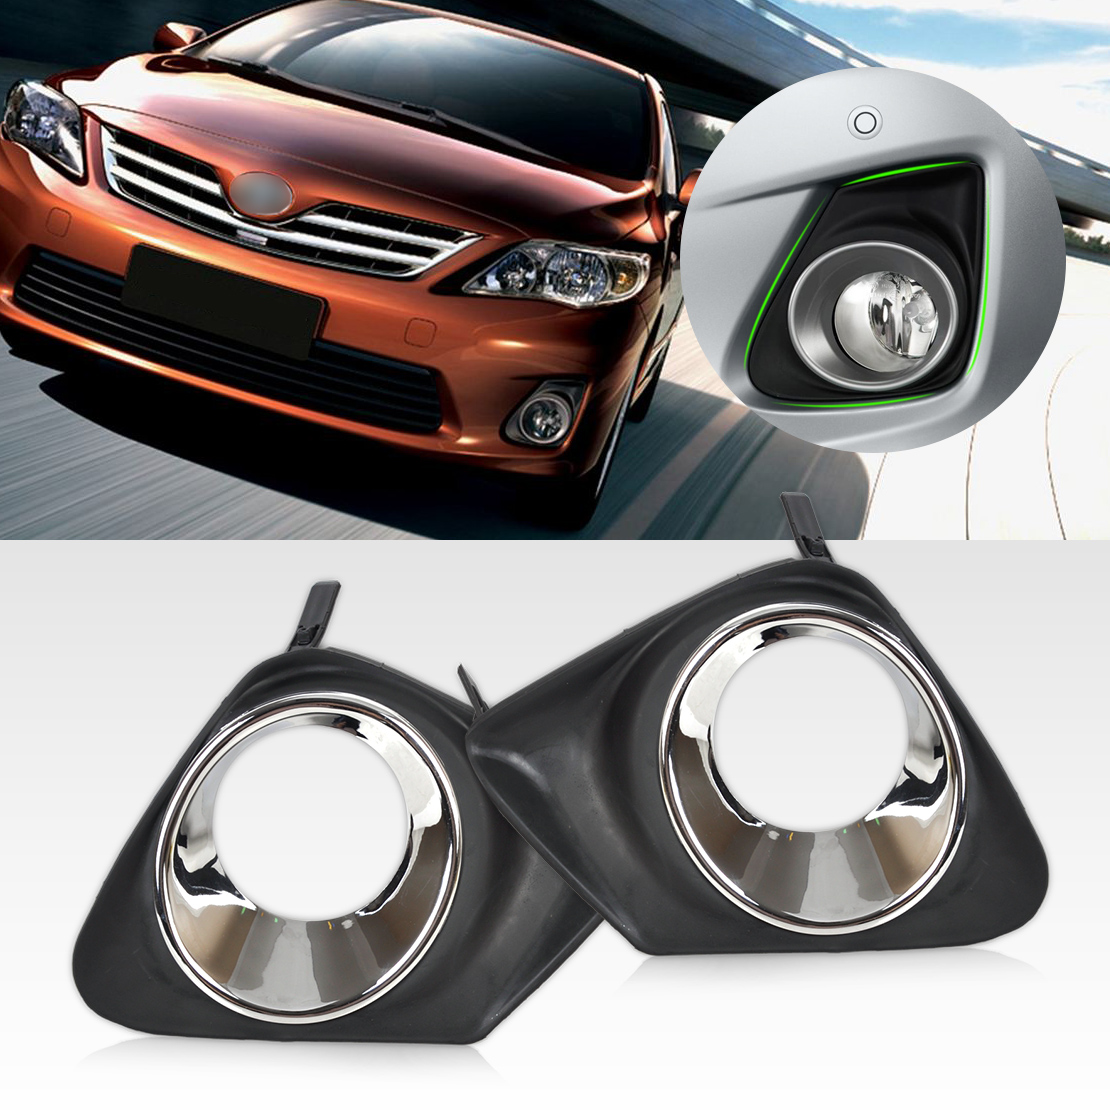 Chrome Front Bumper Fog Light Lamp Cover Grille Grill for 2011-13 Toyota Corolla